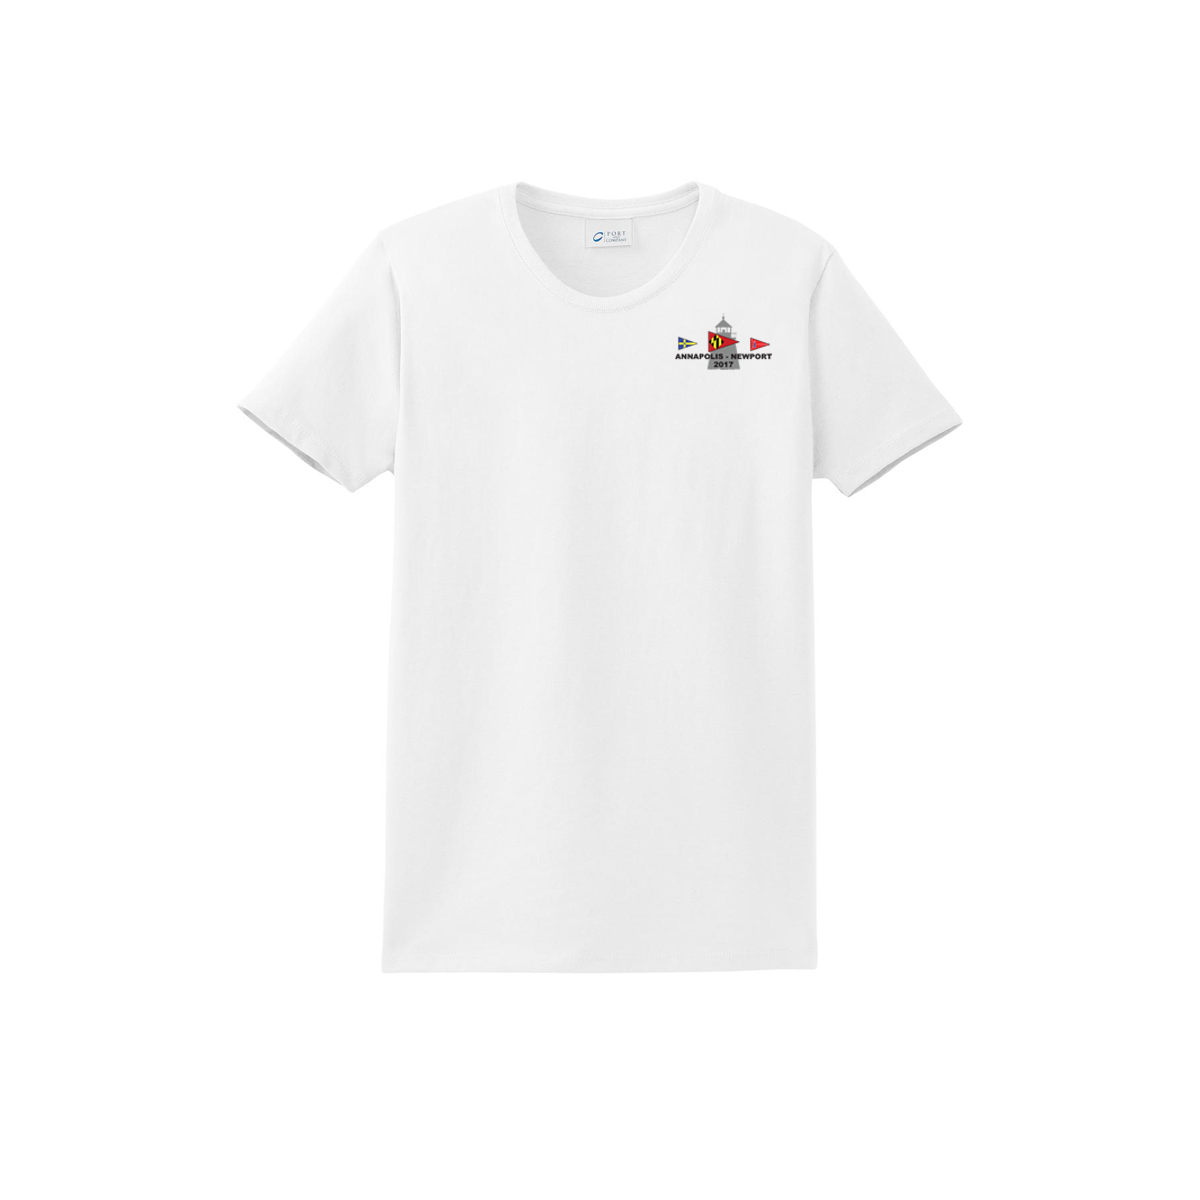 Annapolis to Newport 2017 - Women's Short Sleeve Cotton Tee